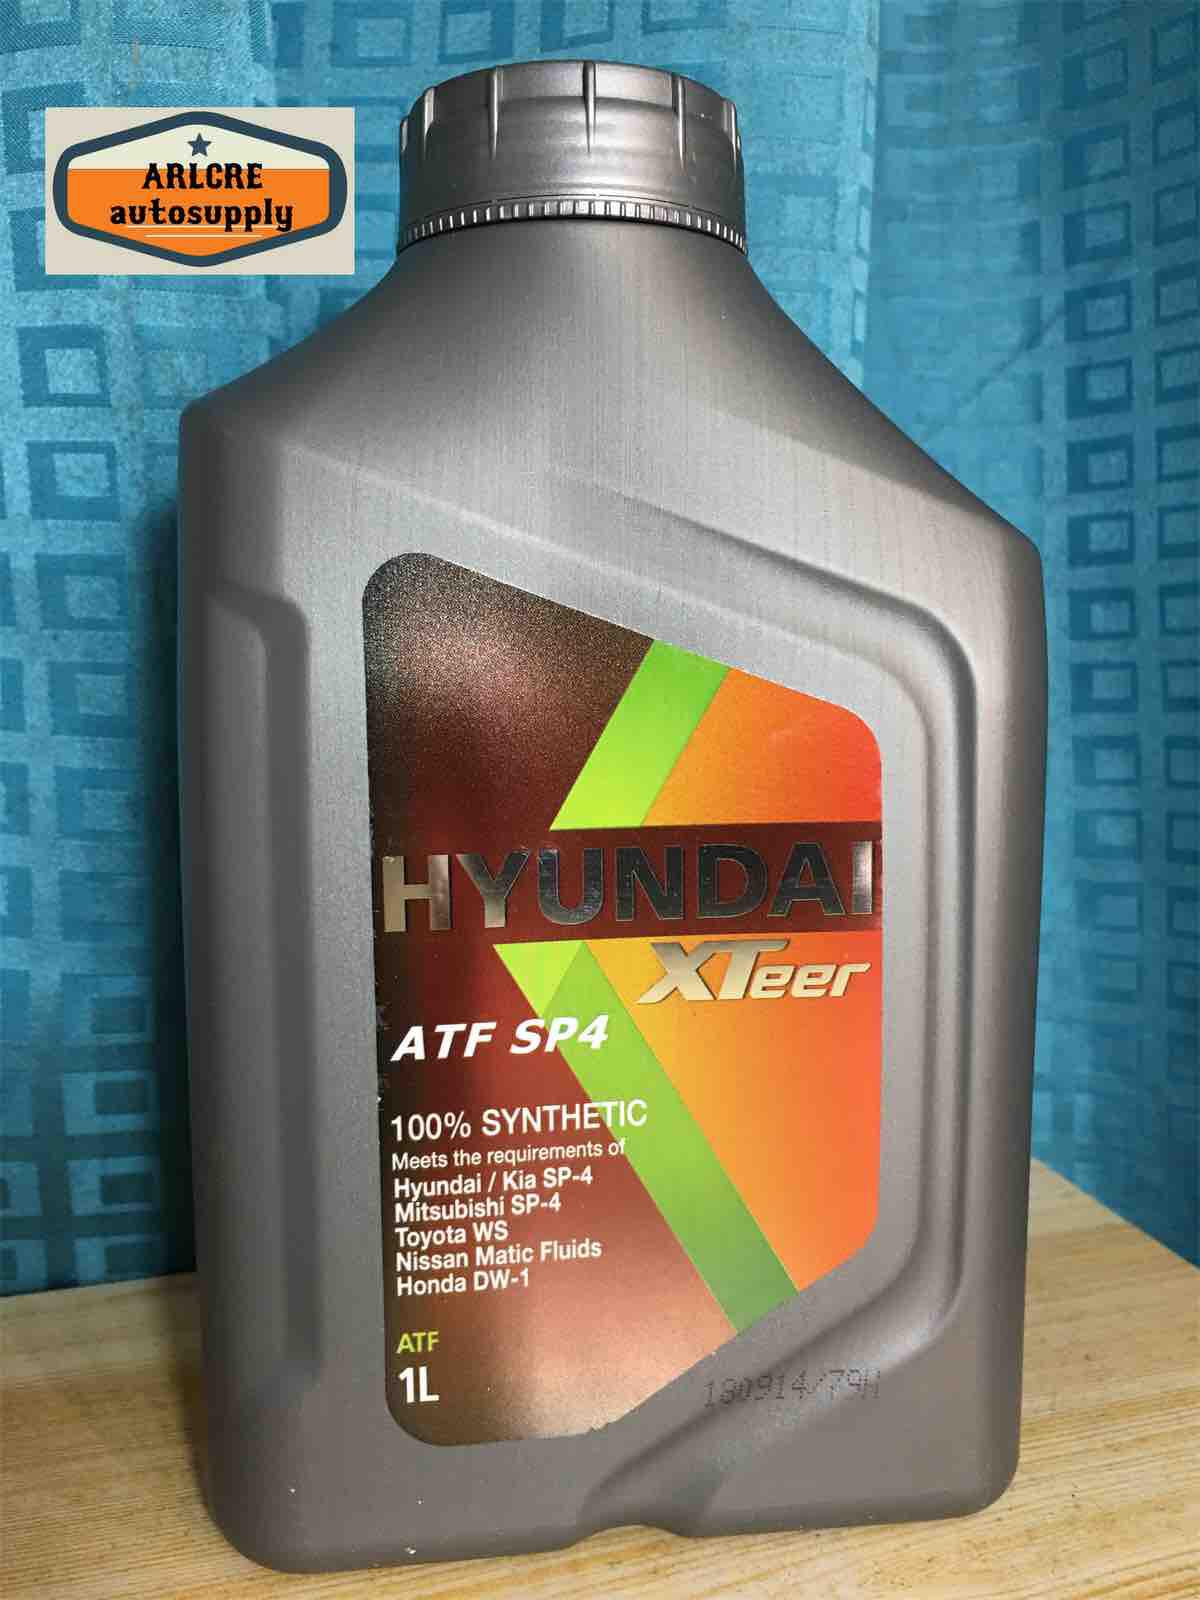 HYUNDAI Xteer ATF SP4 Fully Synthetic 1L